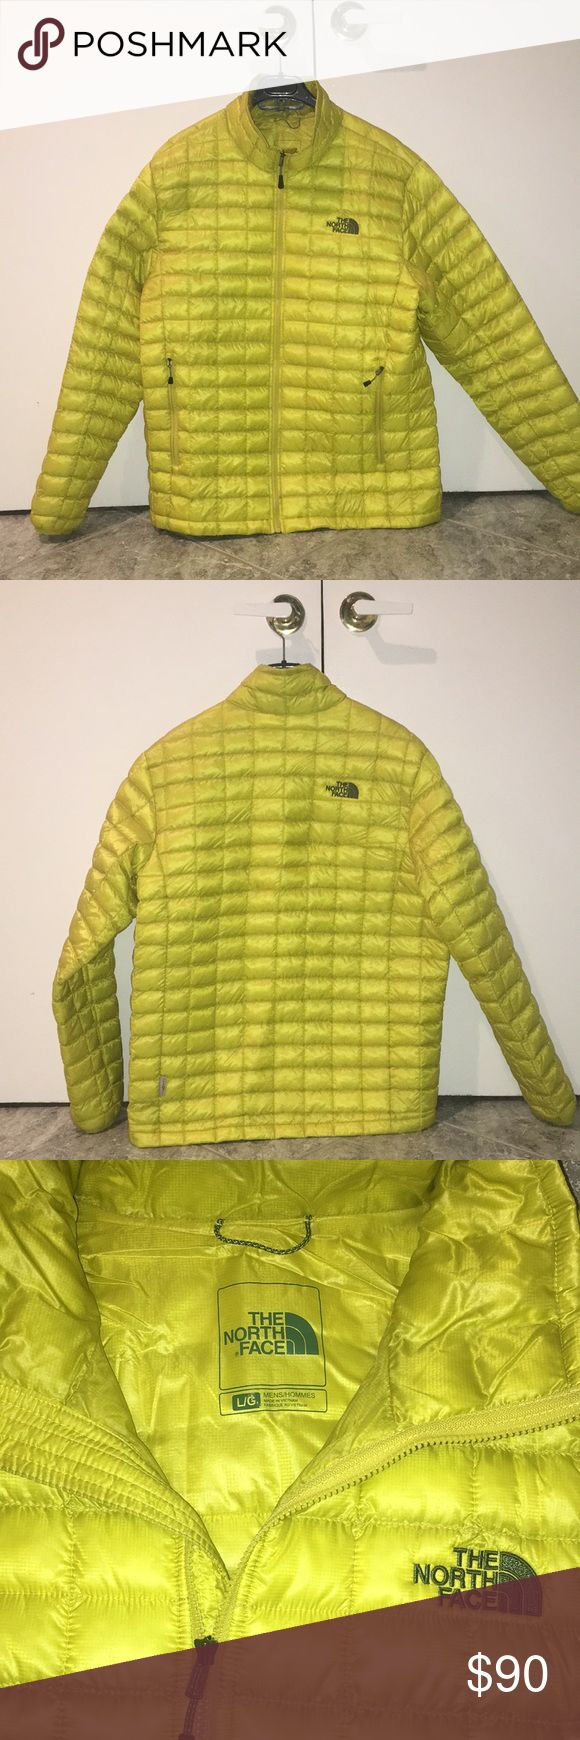 Mens North Face Thermoball Jacket Full Zip in Great Condition. Insulated and Lightweight for Warmth. Color is a cross between neon yellow and green North Face Jackets & Coats